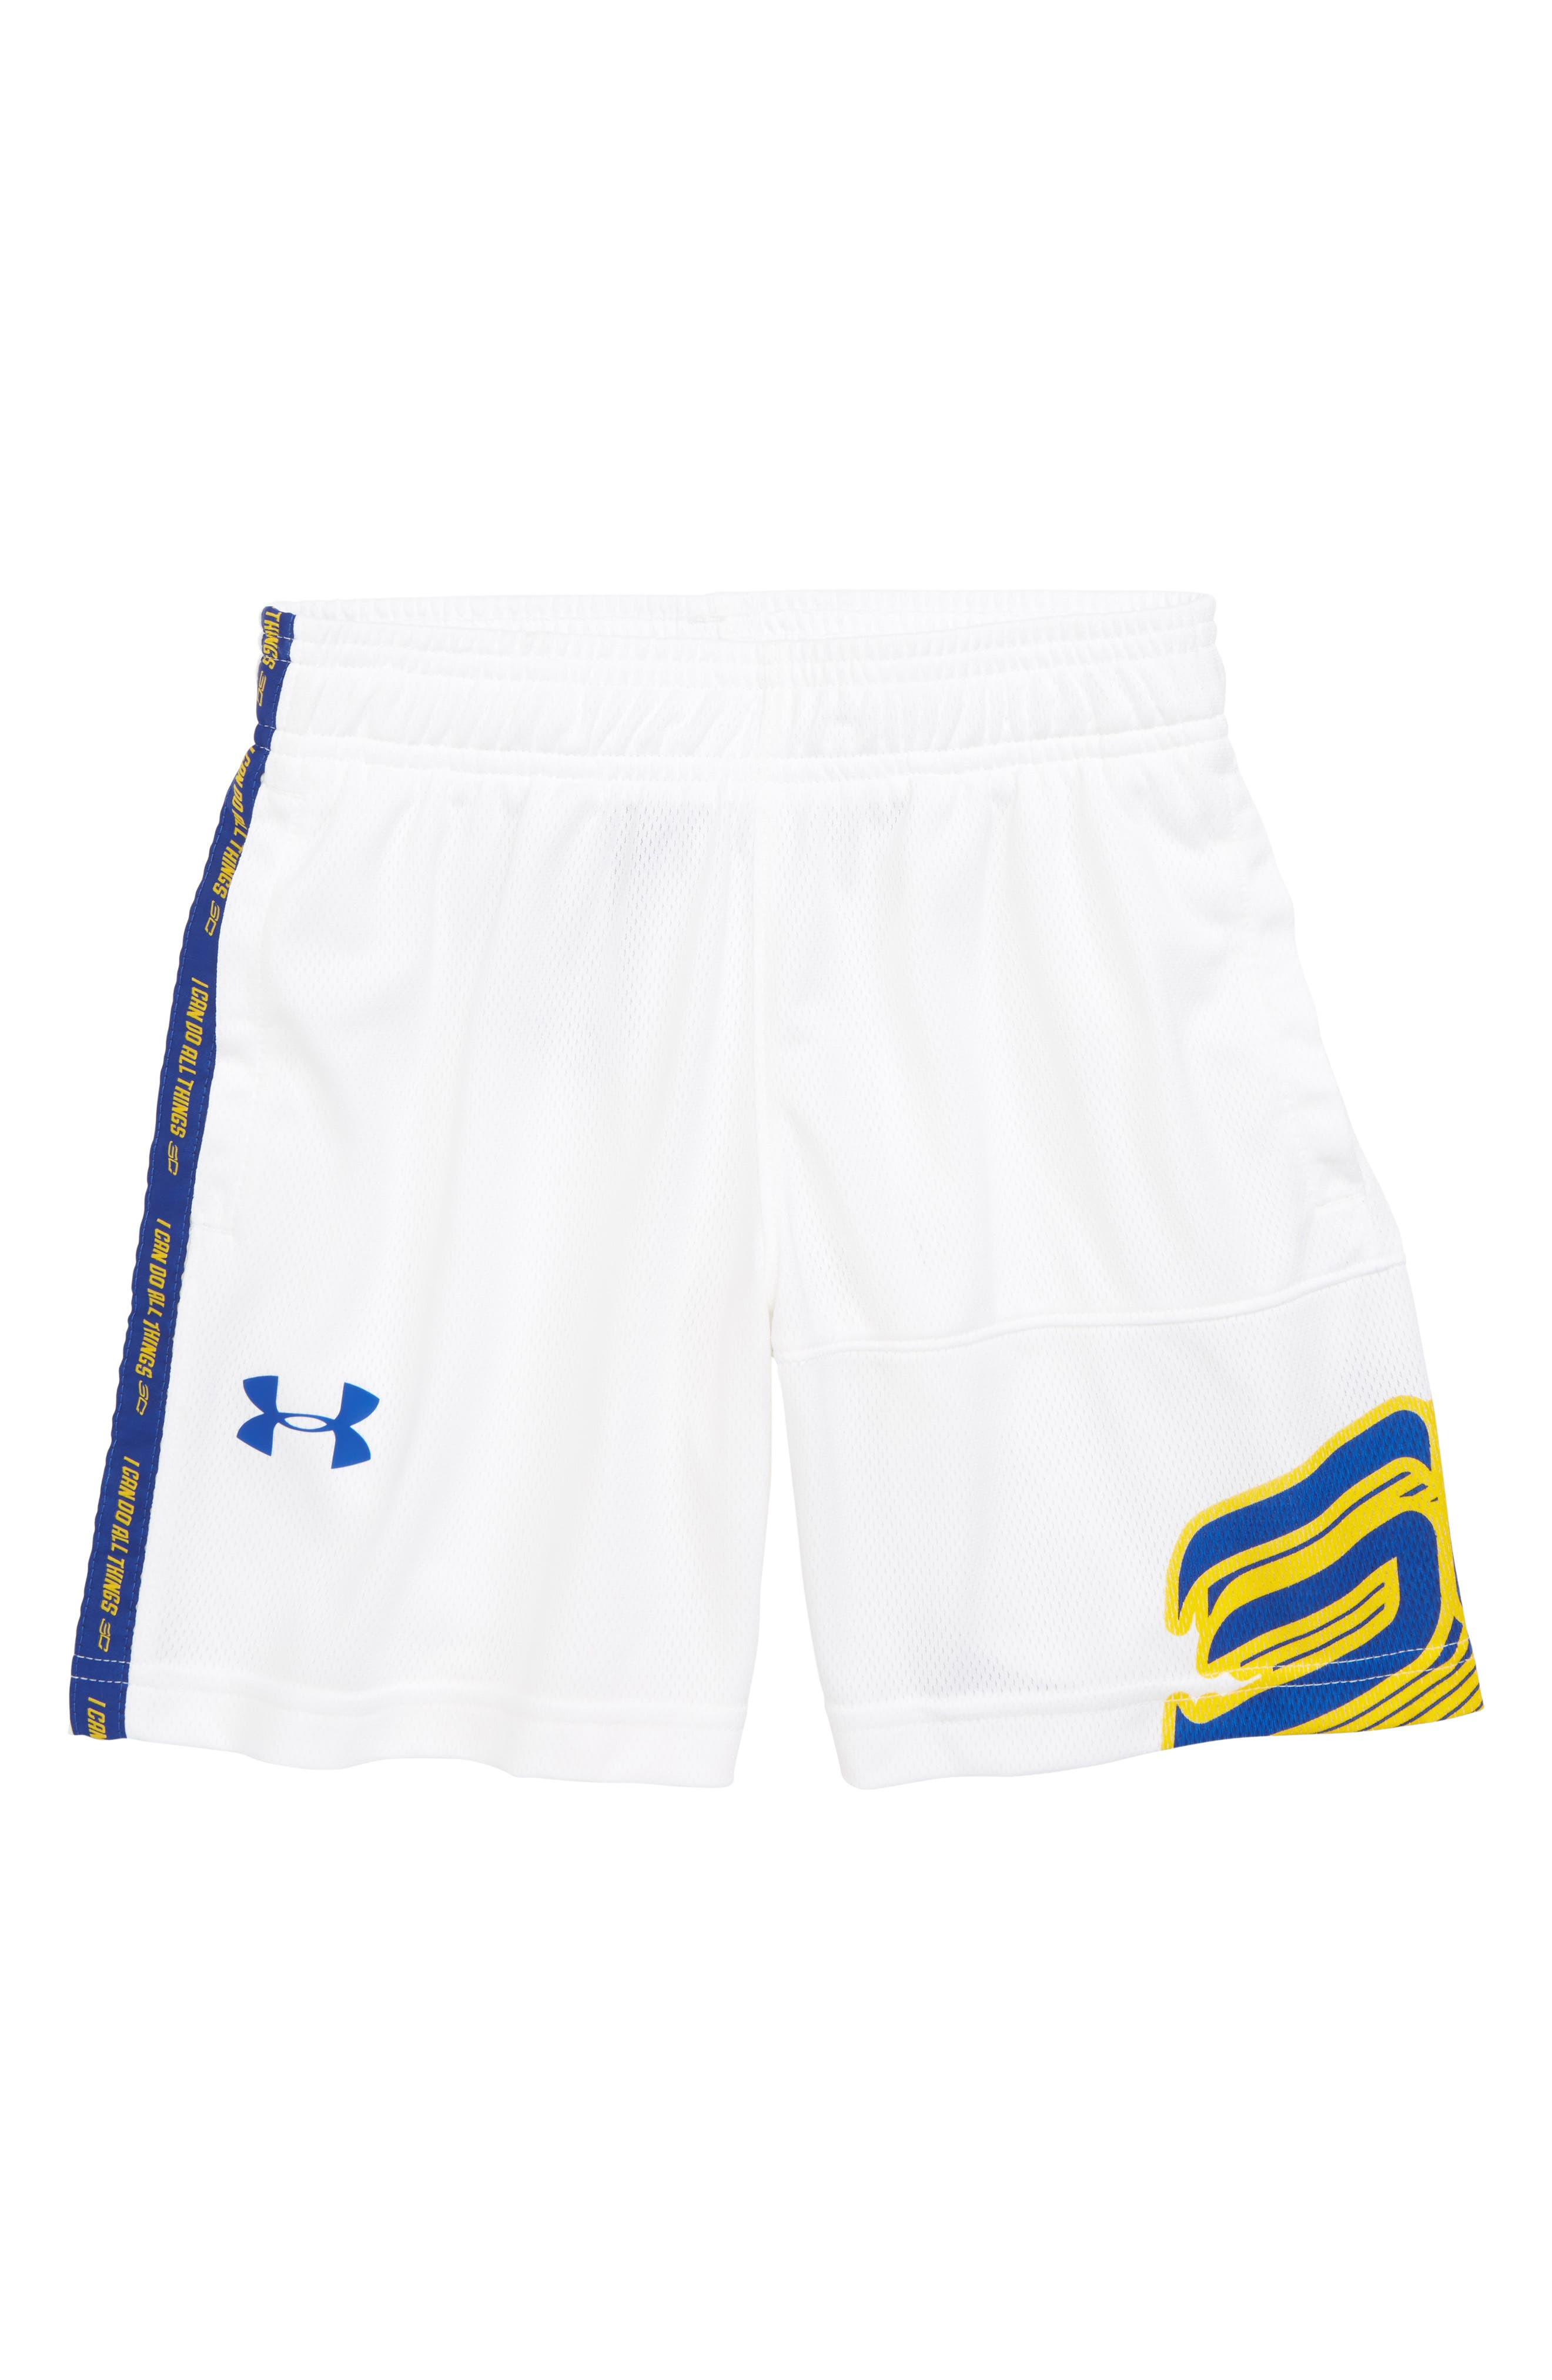 SC30 Basketball Shorts,                         Main,                         color, 101